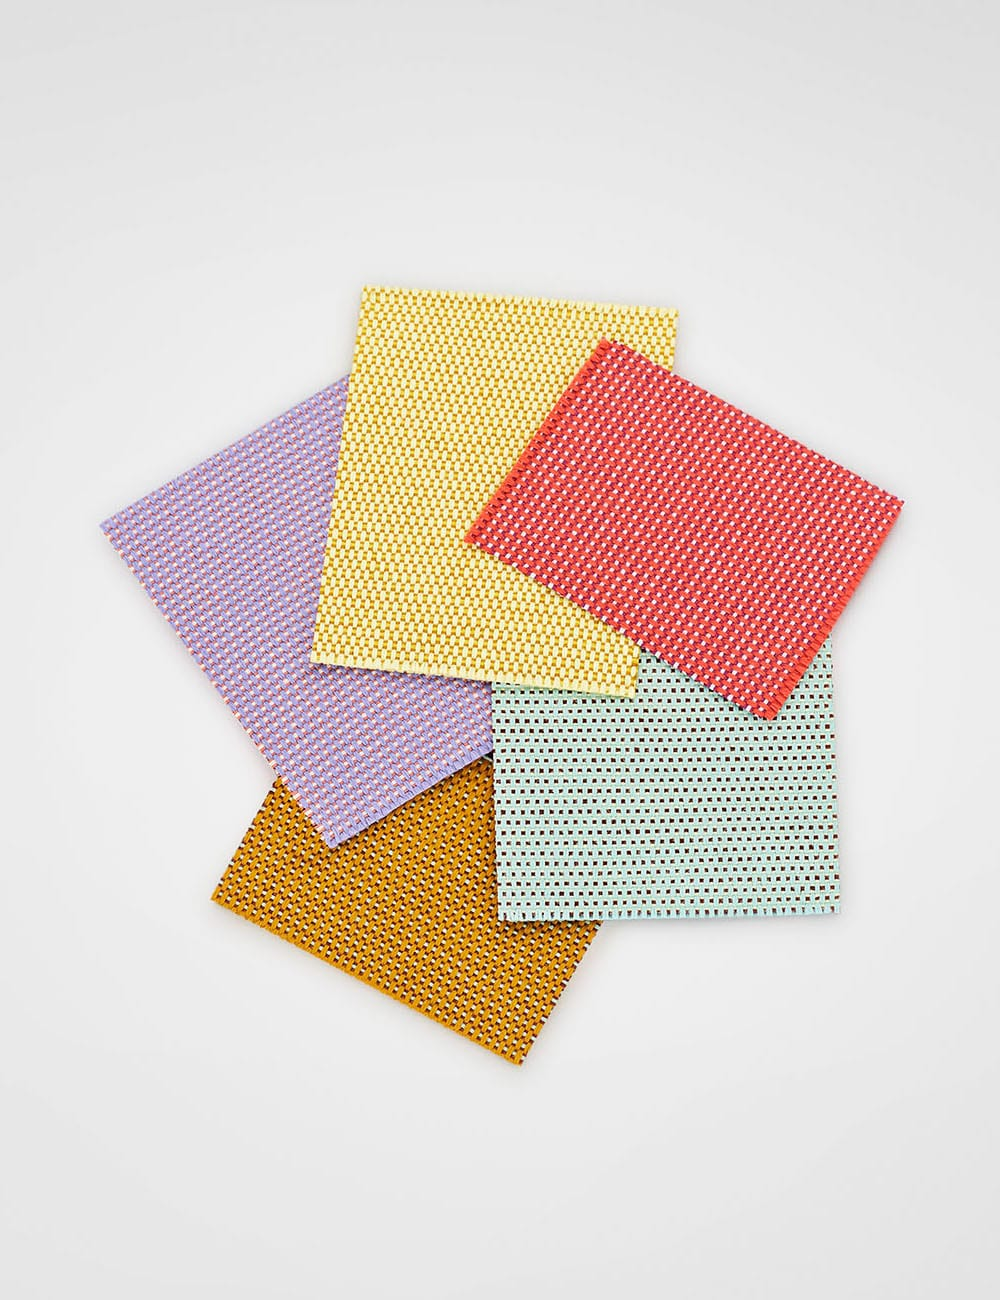 Rios Patio Textile by Karina Nielsen for Kvadrat at Imm Cologne 2019   Yellowtrace